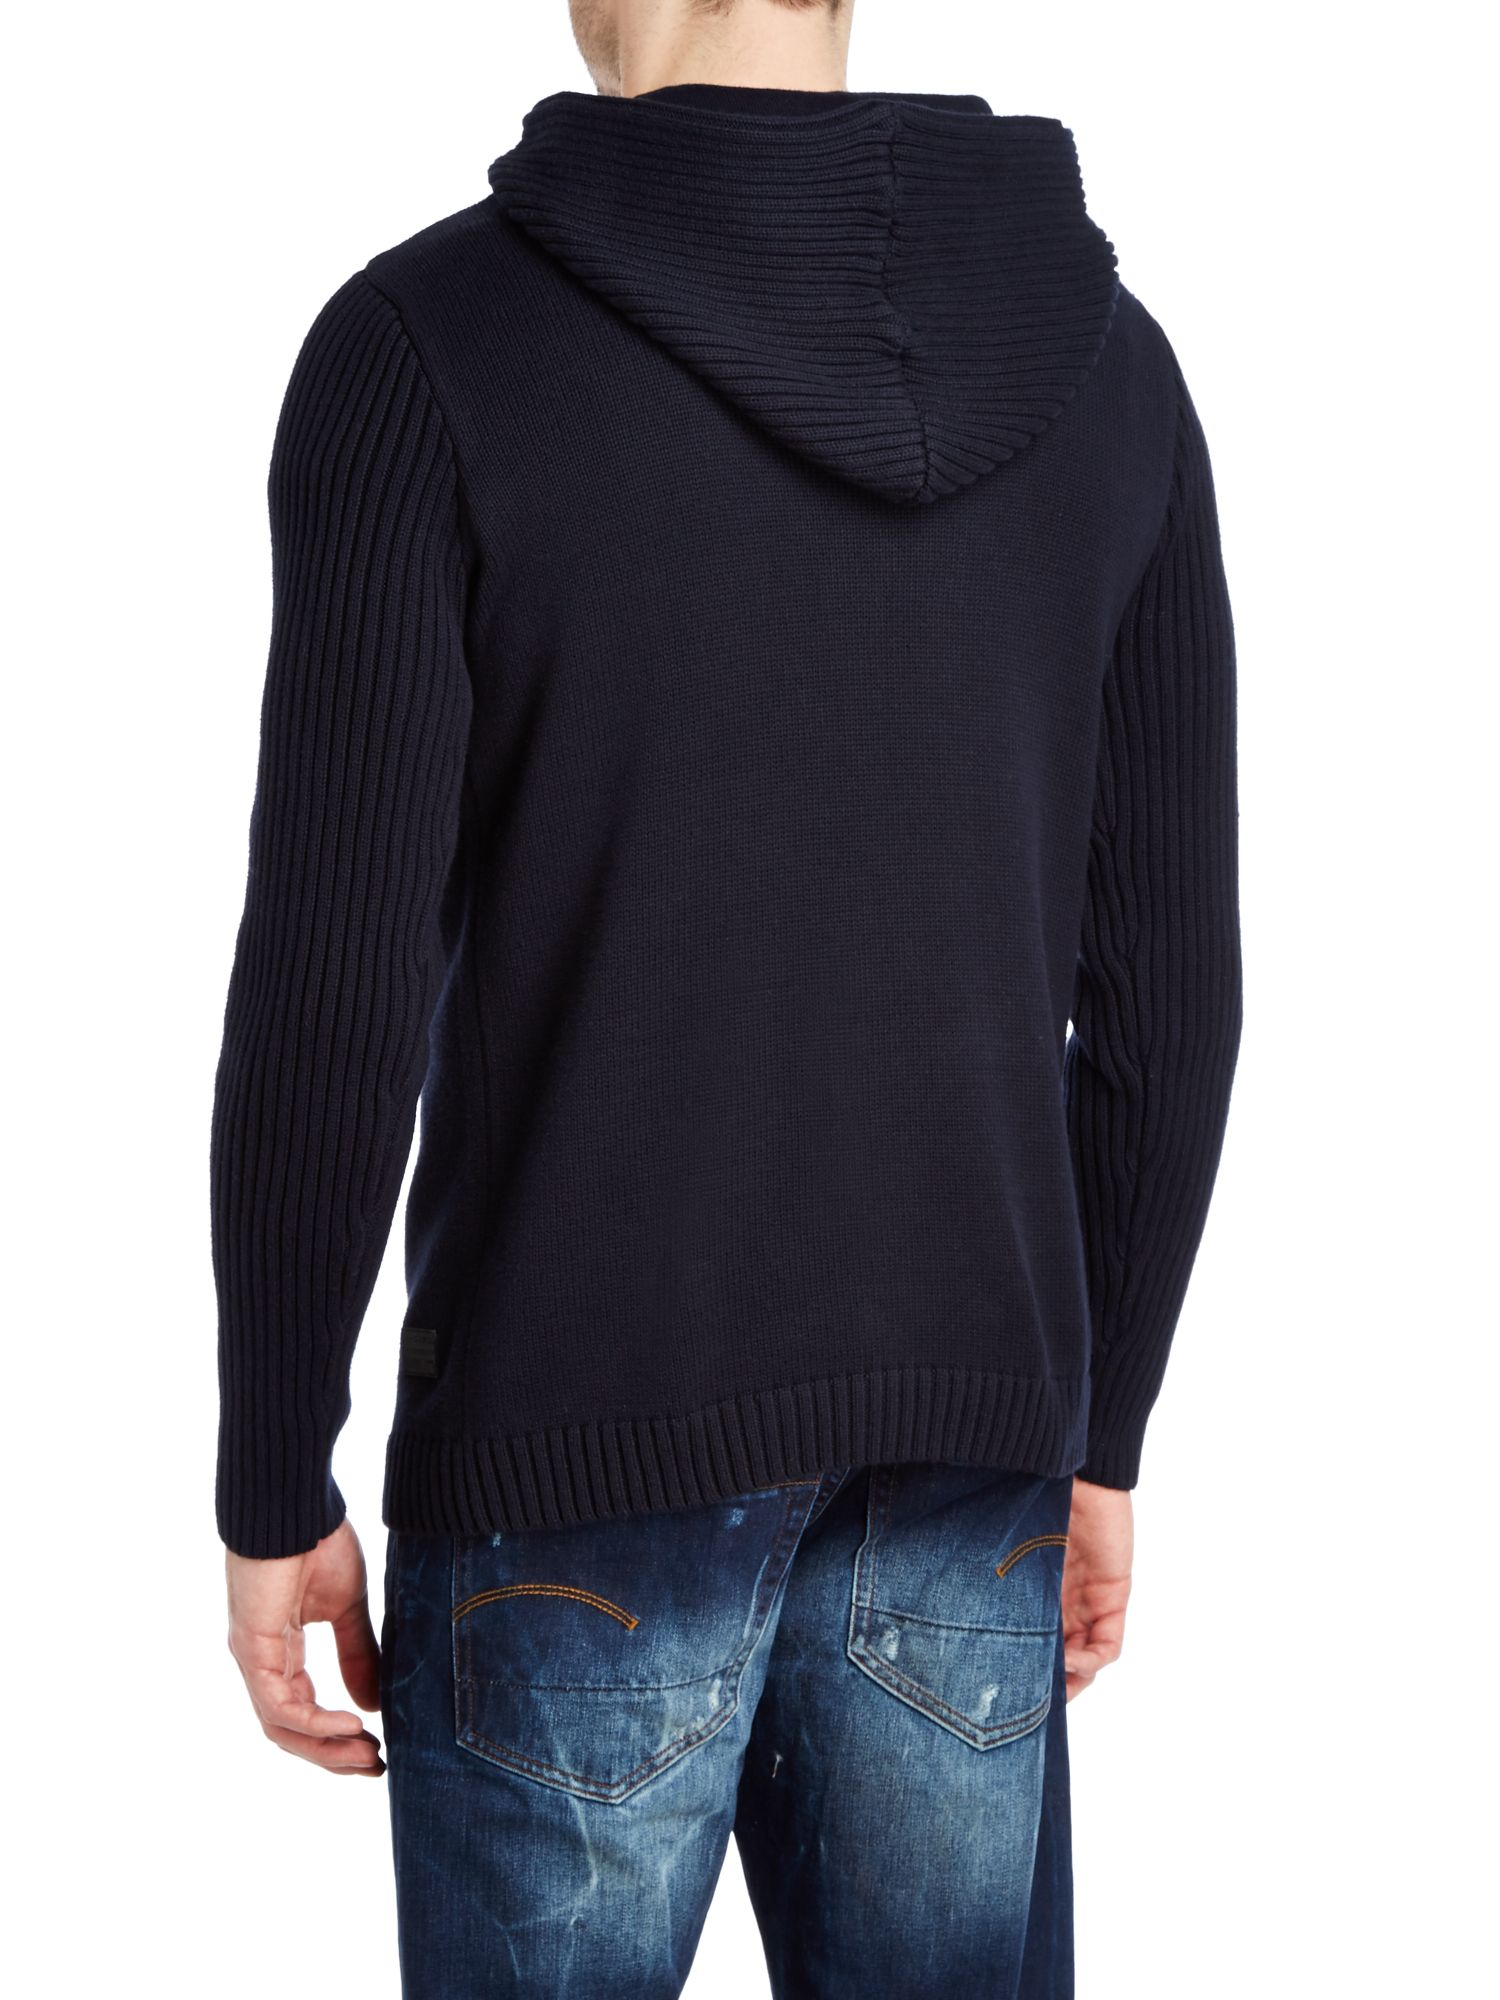 g star raw hooded premium knitted sweatshirt in blue for men lyst. Black Bedroom Furniture Sets. Home Design Ideas